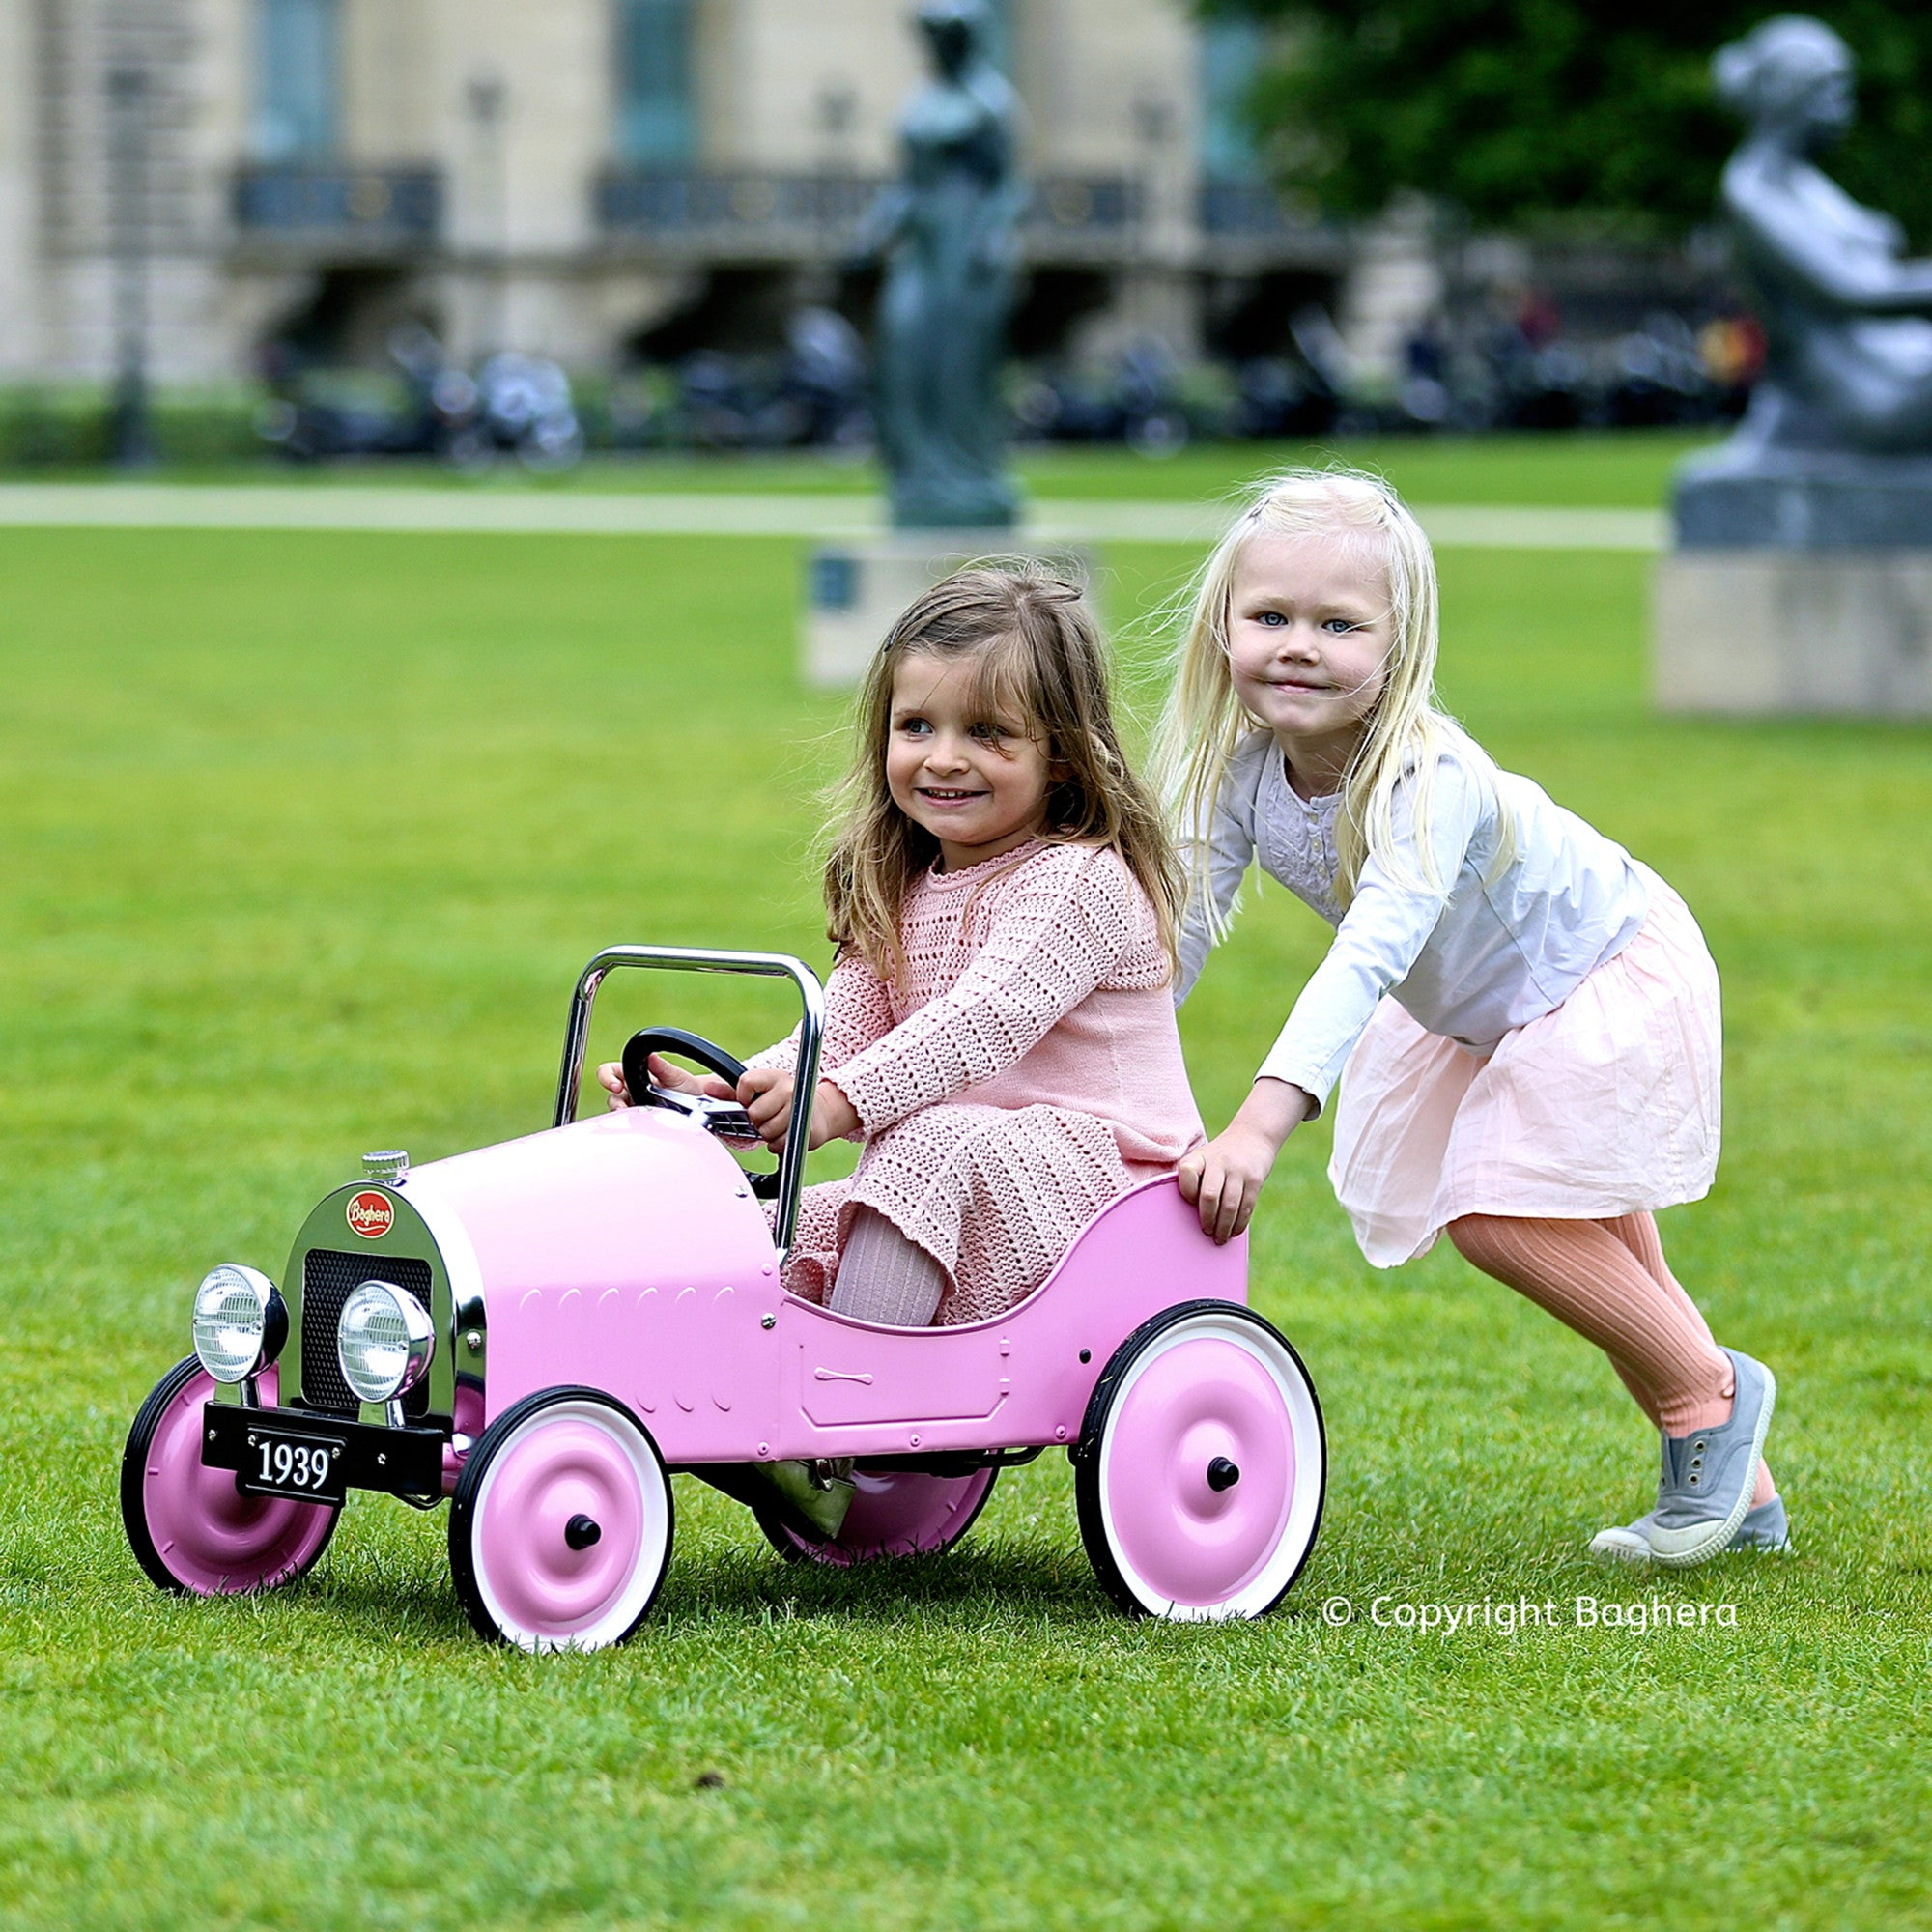 Classic Baghera Pedal Car Baghera Kids Riding Vehicles Pink at Little Earth Nest Eco Shop